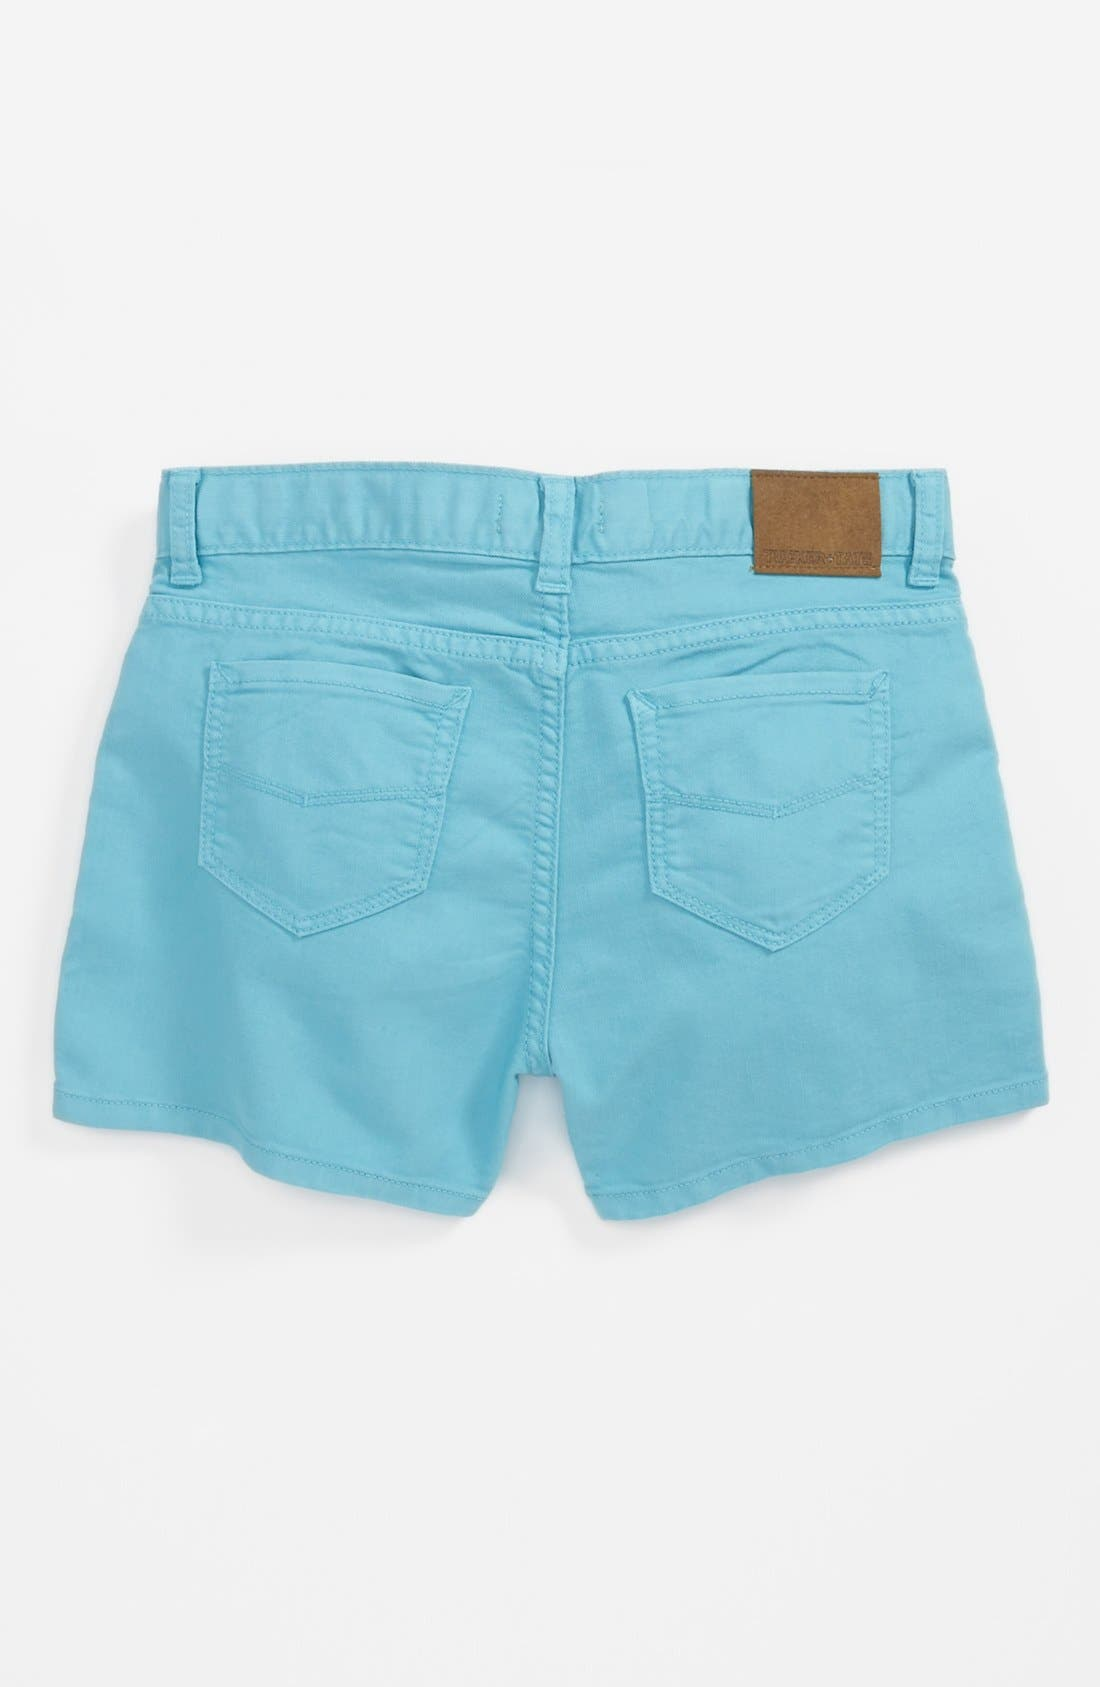 Alternate Image 1 Selected - Tucker + Tate 'Abbie' Denim Shorts (Big Girls)